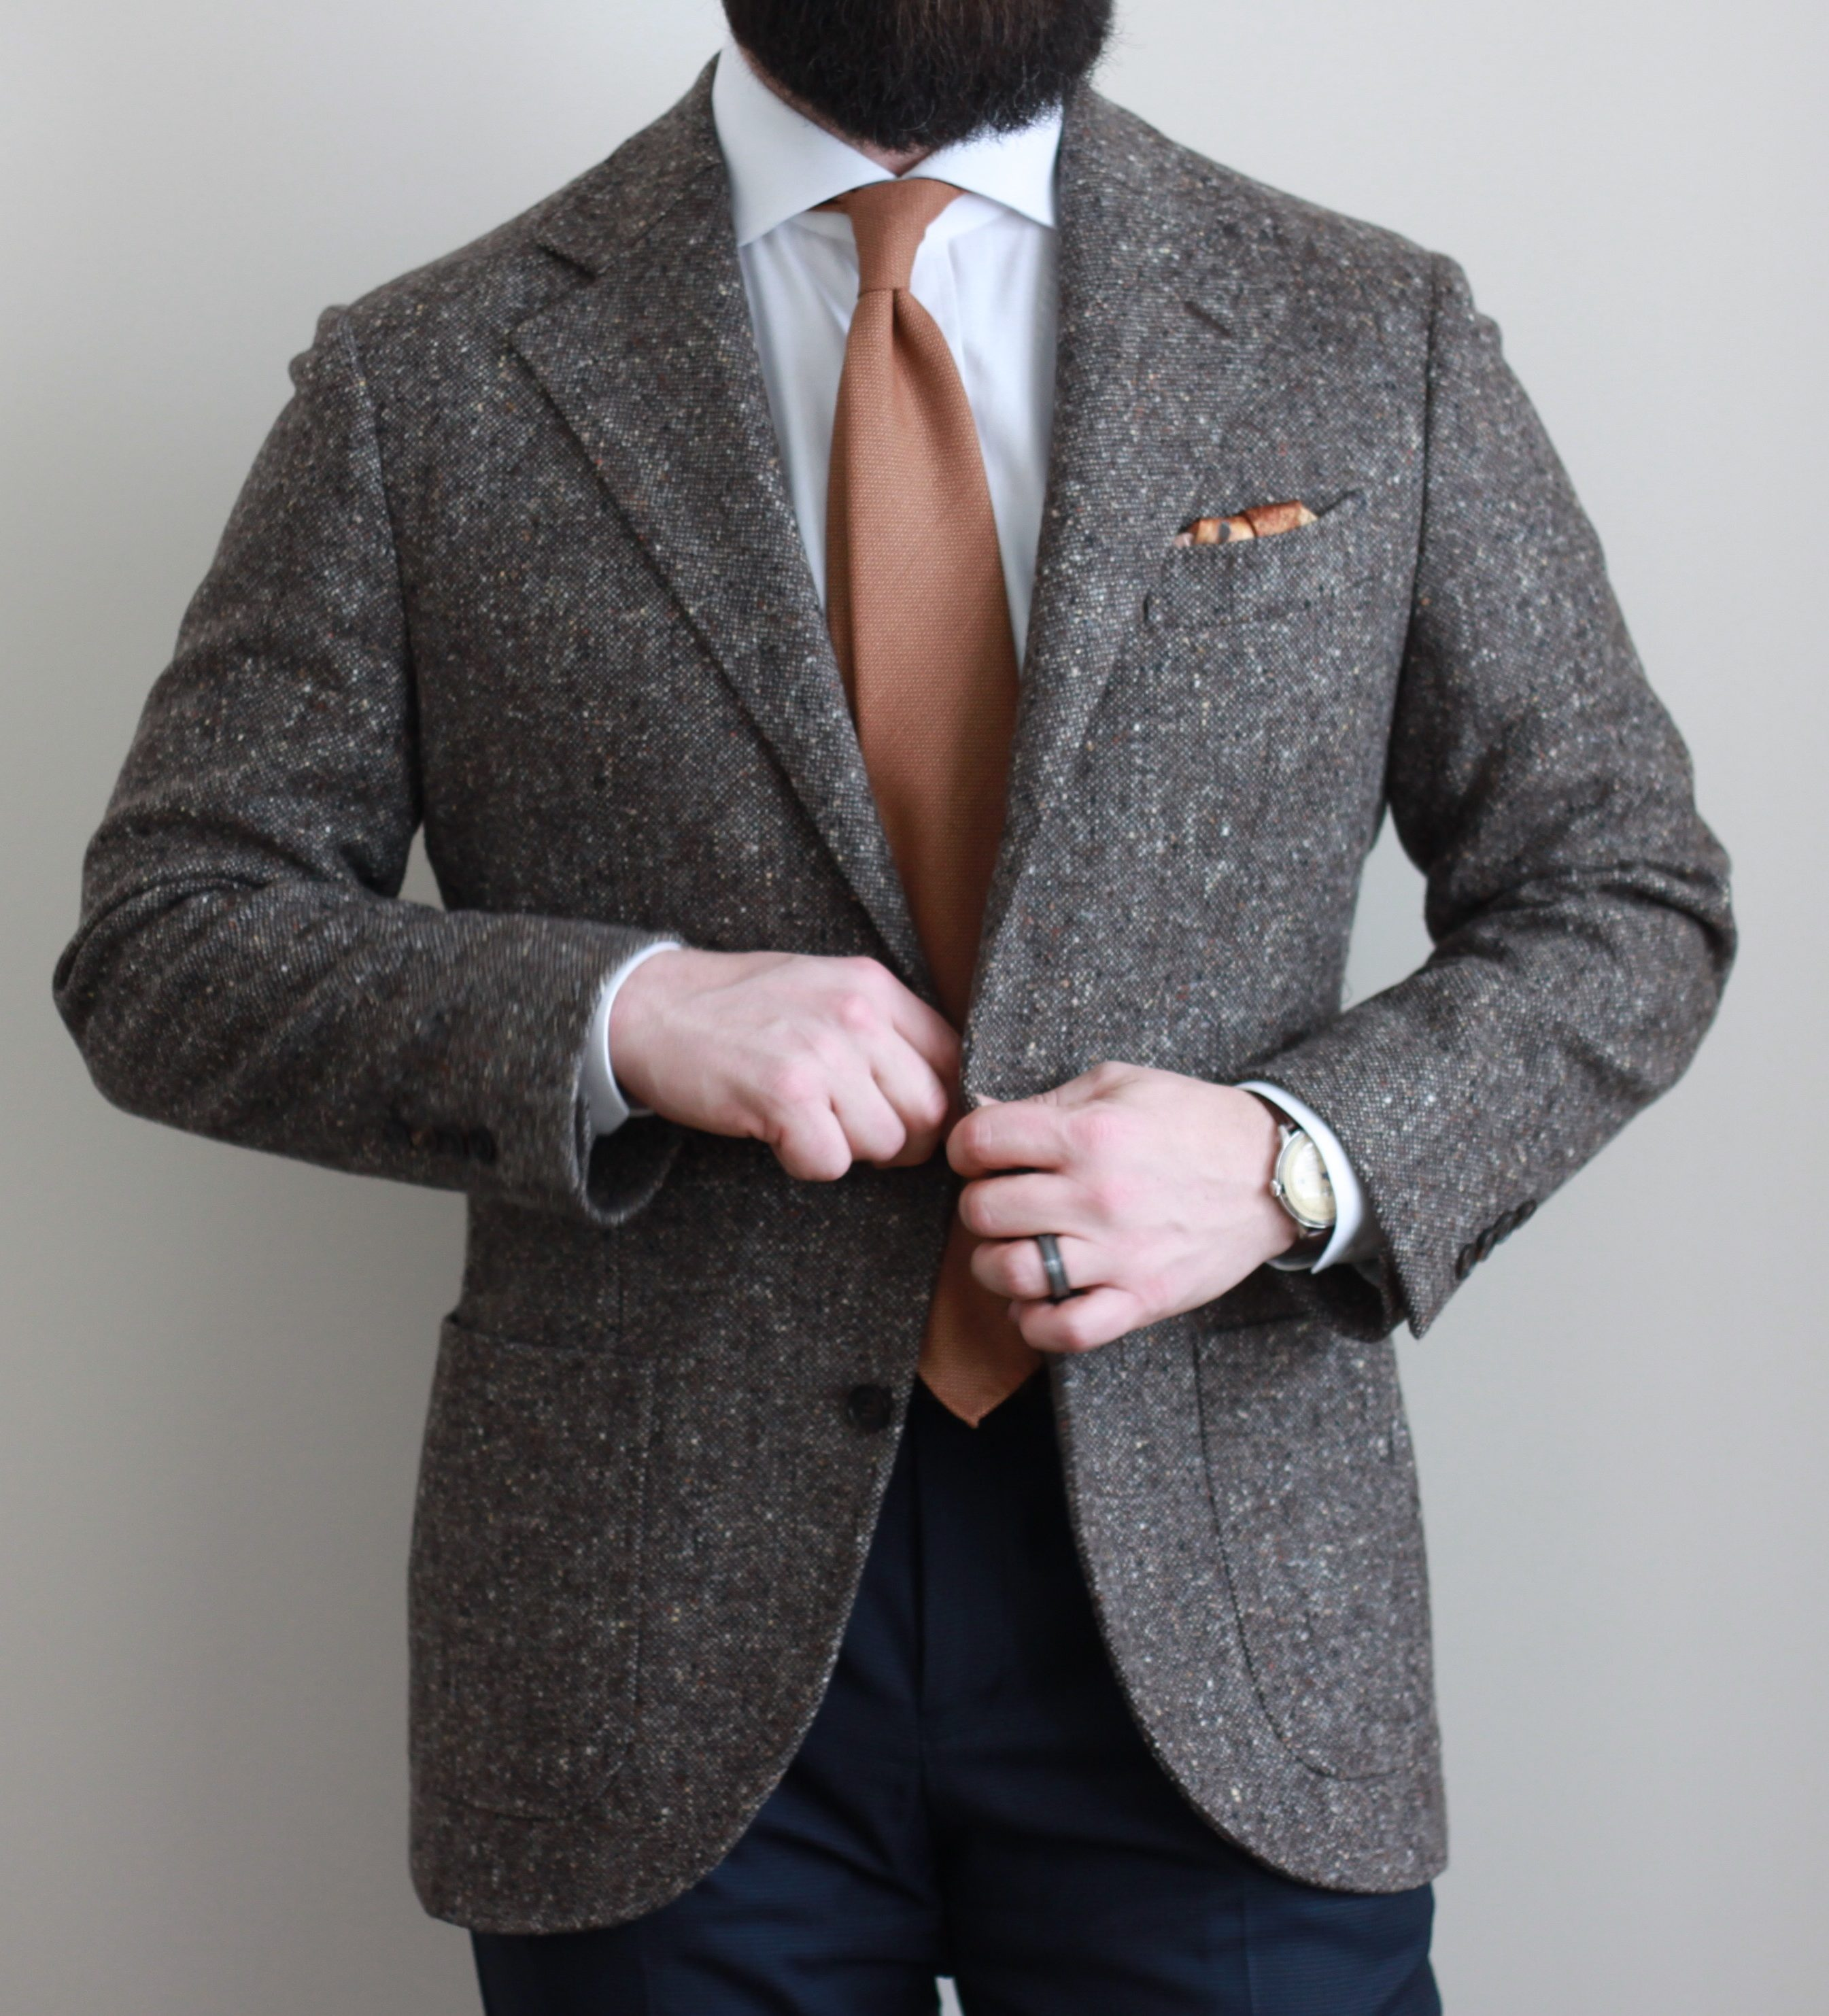 donegal, neapolitan, spier mackay, sport coat, odd jacket, tweed, patch pockets